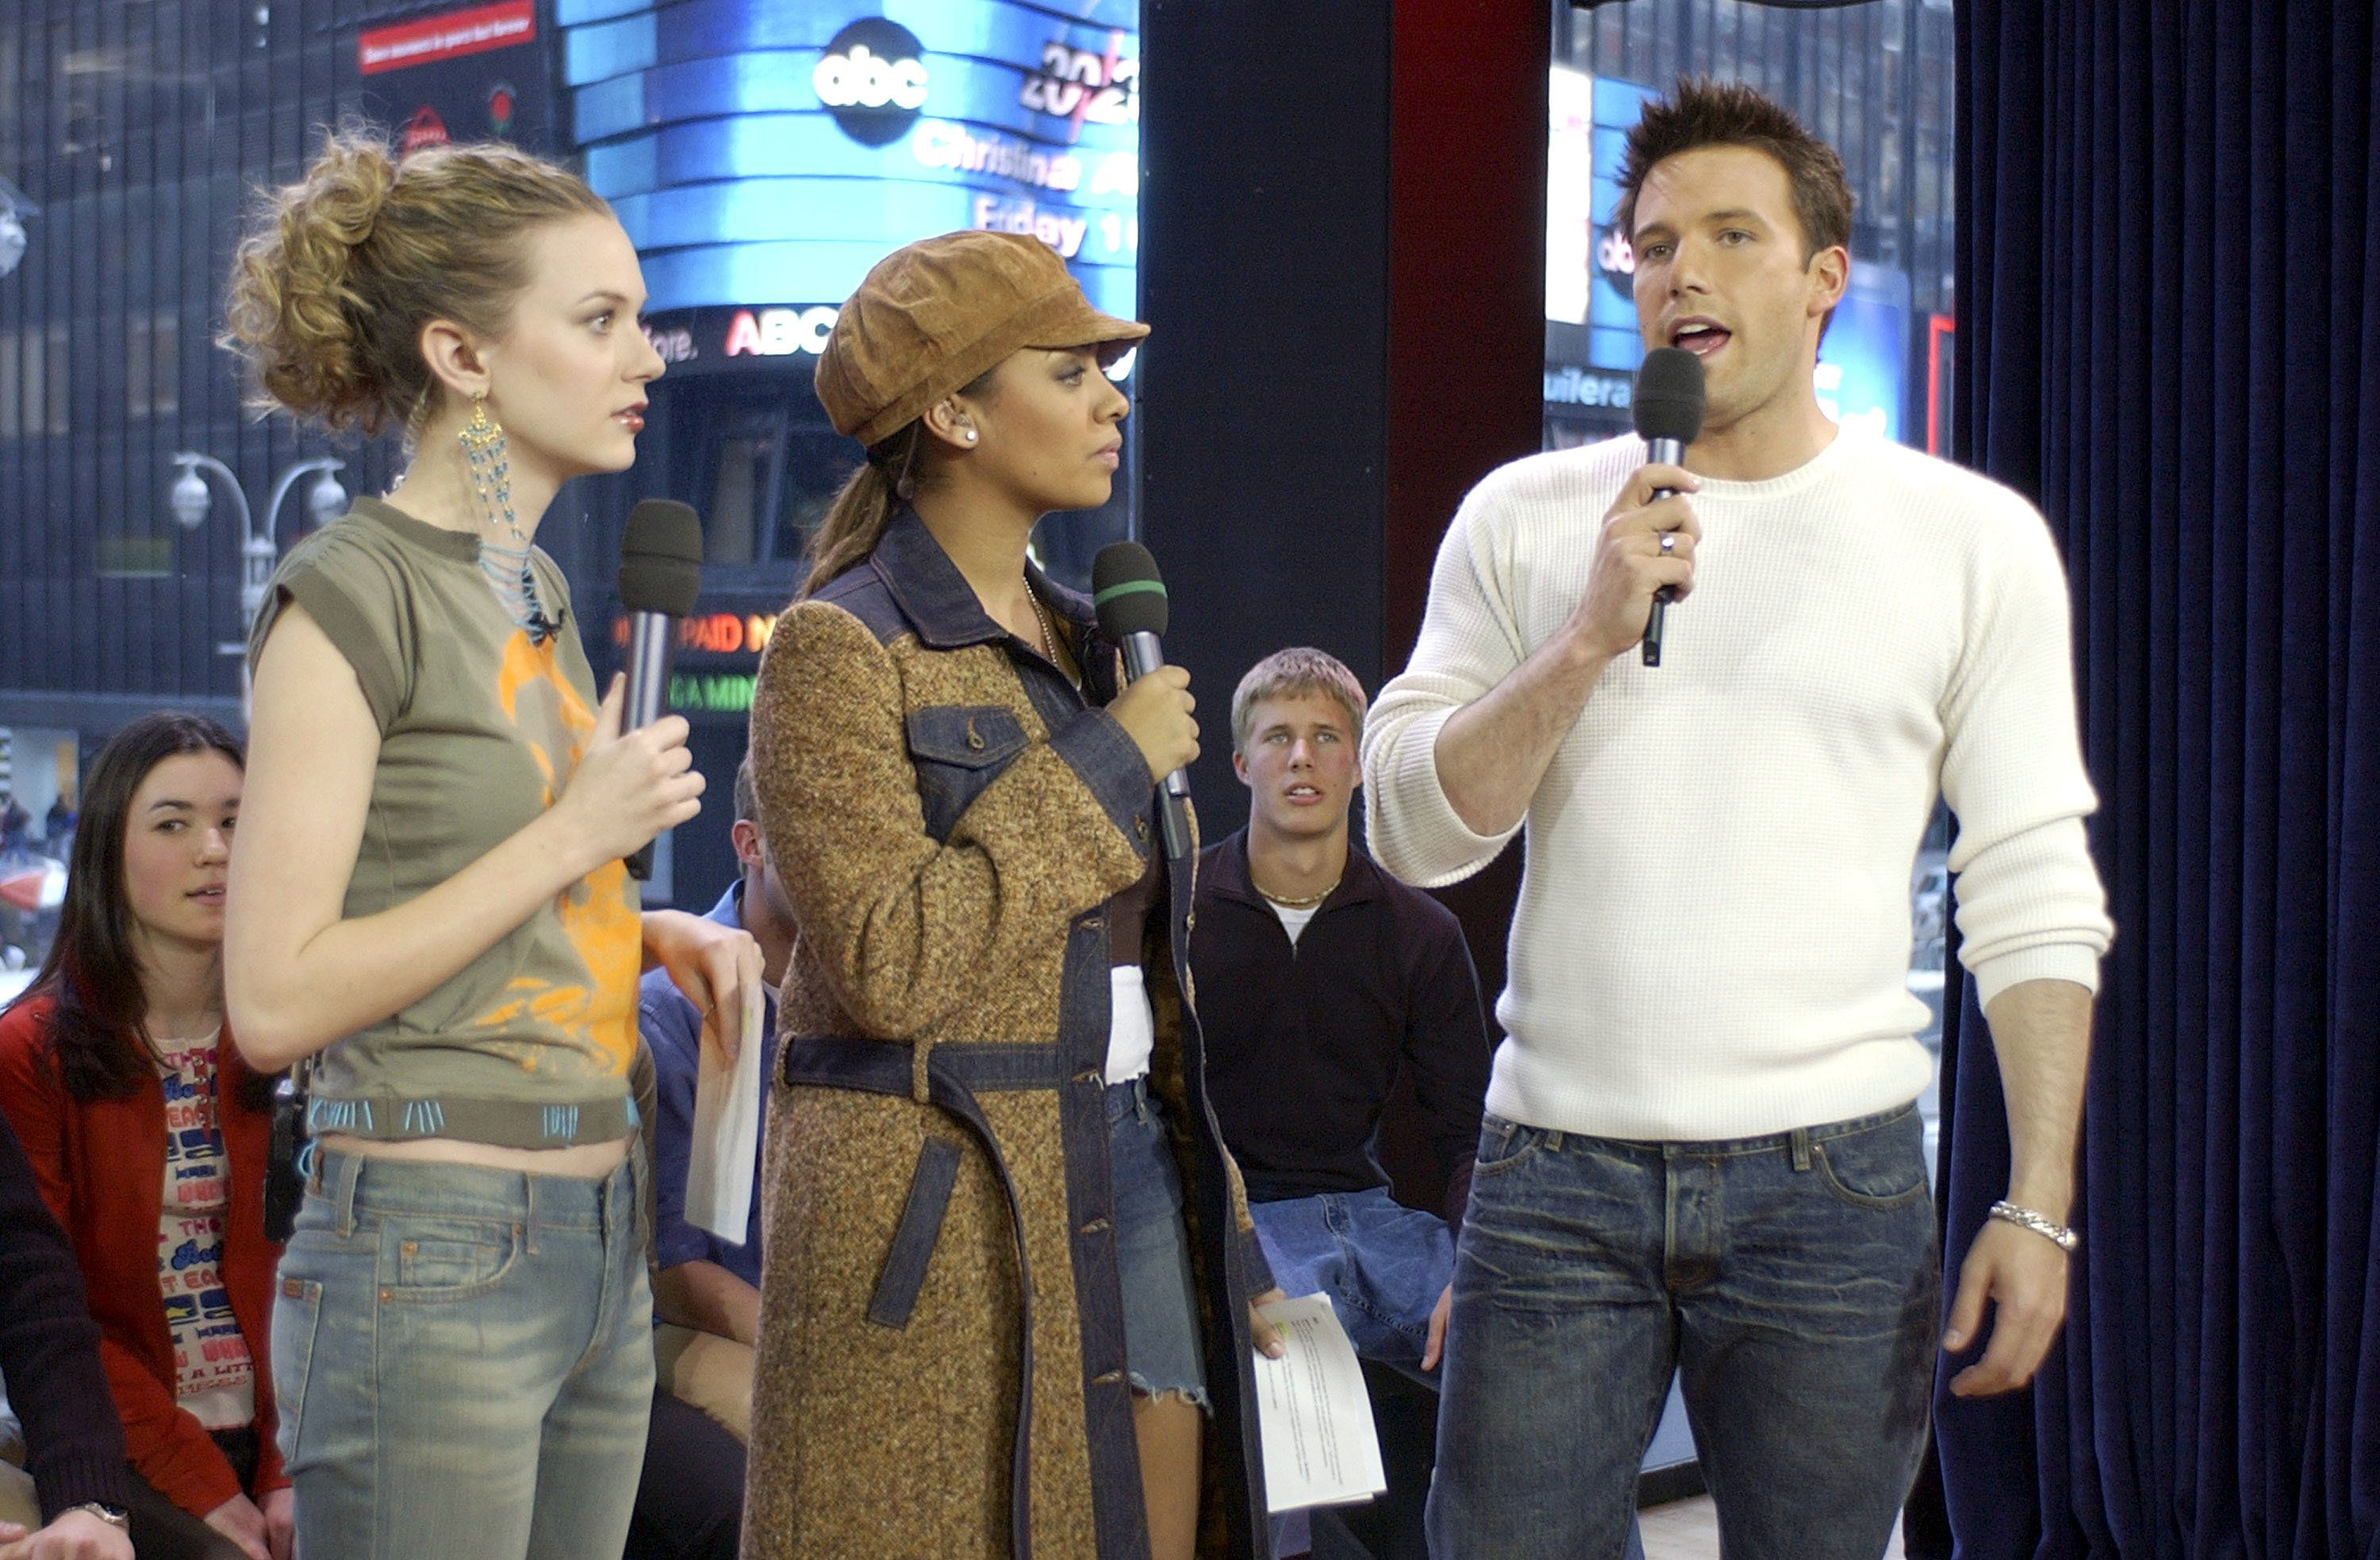 NEW YORK - FEBRUARY 13:  (U.S. TABS OUT) Actor Ben Affleck appears with VJ's Hilarie Burton and La La on MTV's 'TRL' at the MTV Times Square Studios February 13, 2003 in New York City.  (Photo by Frank Micelotta/Getty Images)